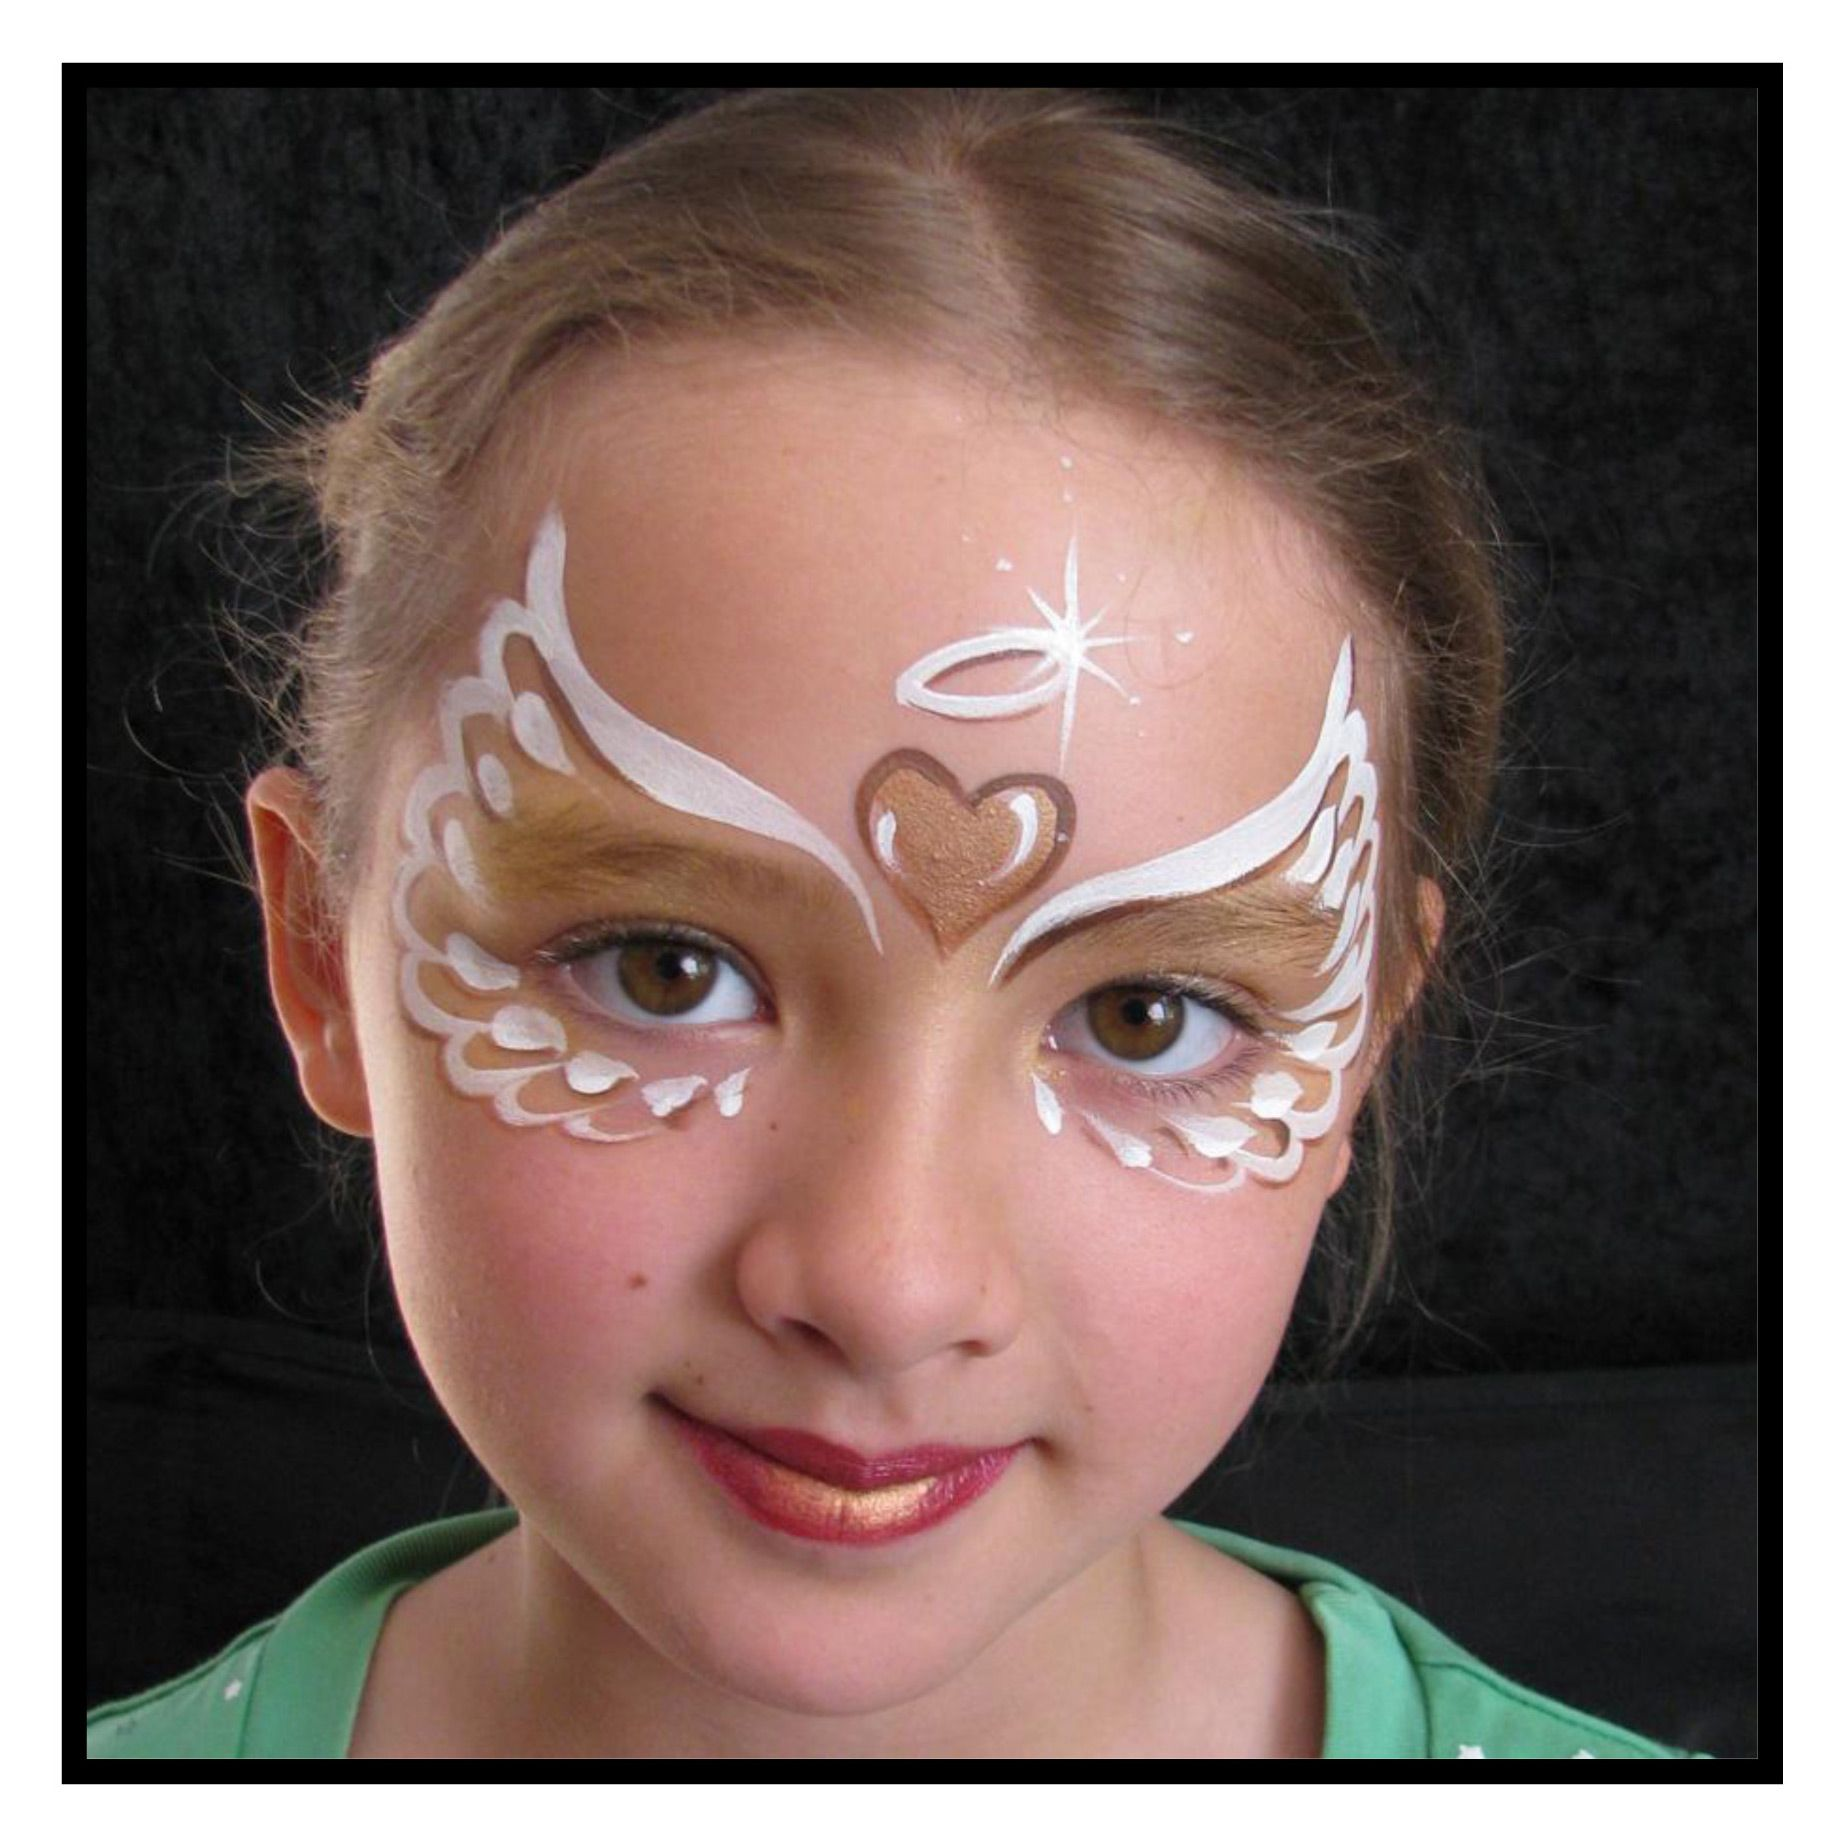 Diy Maquillage Enfant Ange Maquillage Enfant Pinterest Maquillage Enfant Anges Et